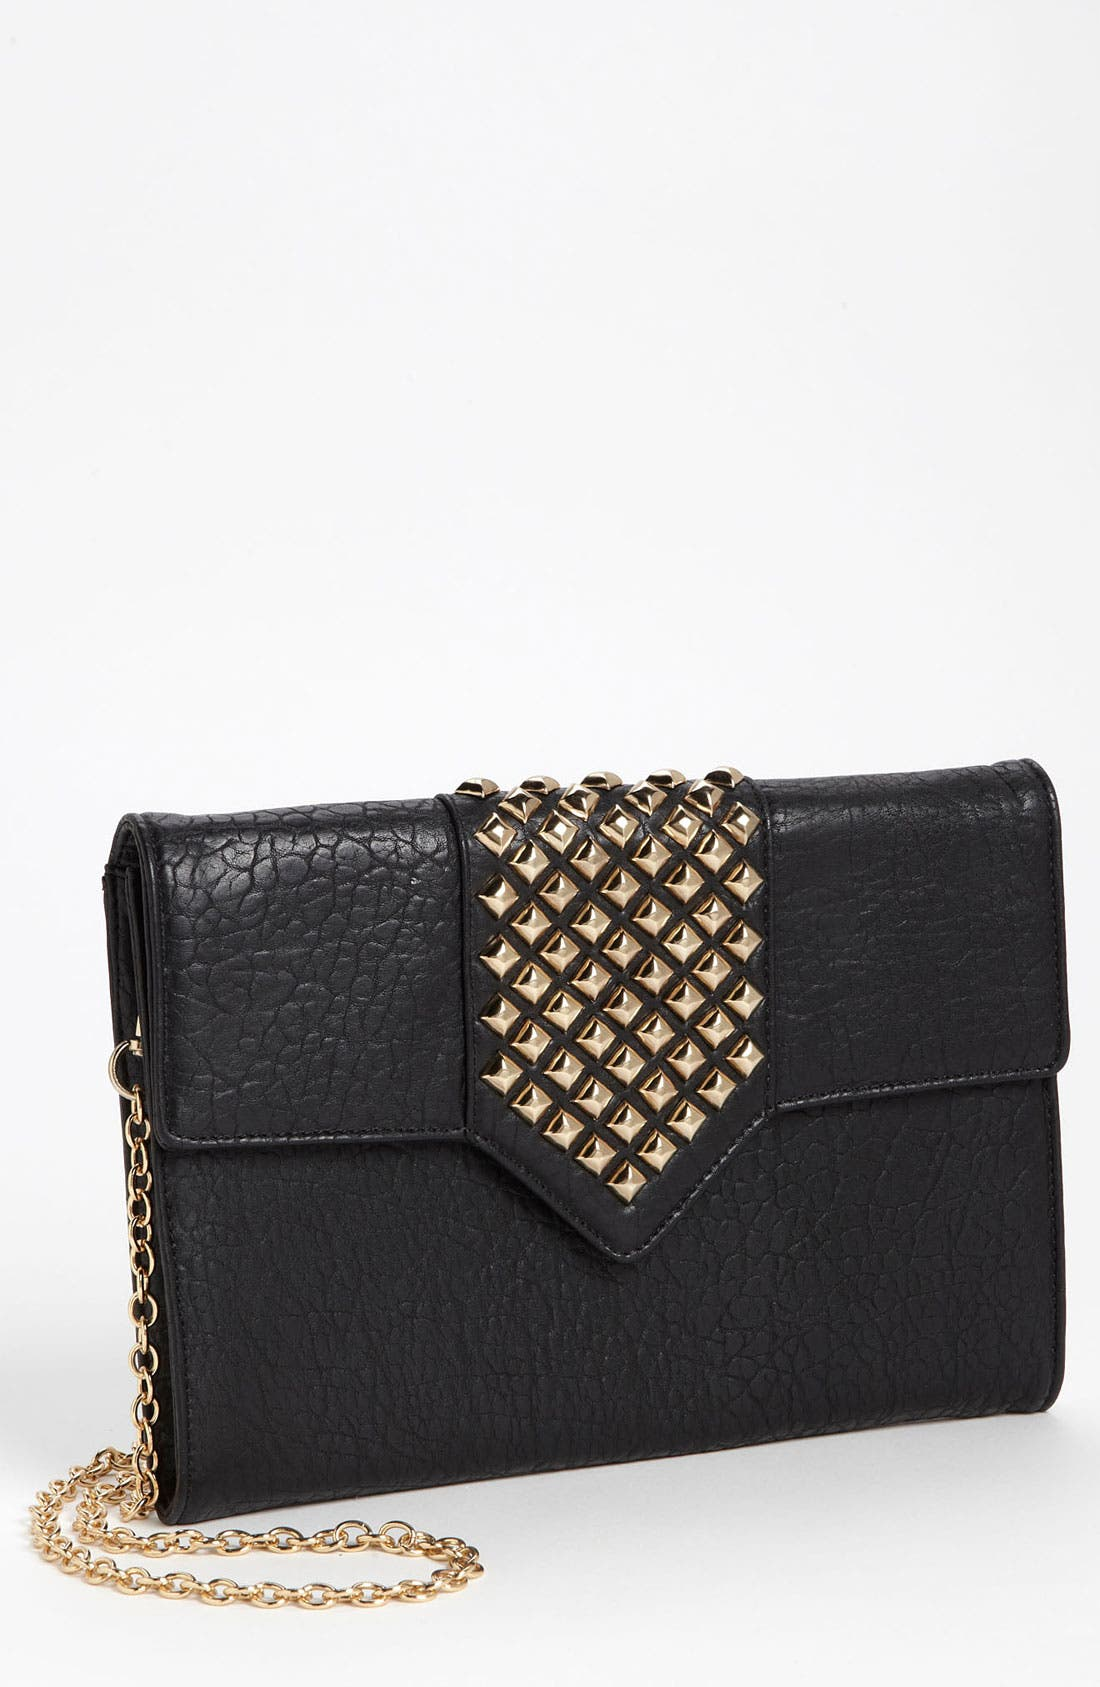 Main Image - Top Choice Studded Envelope Clutch